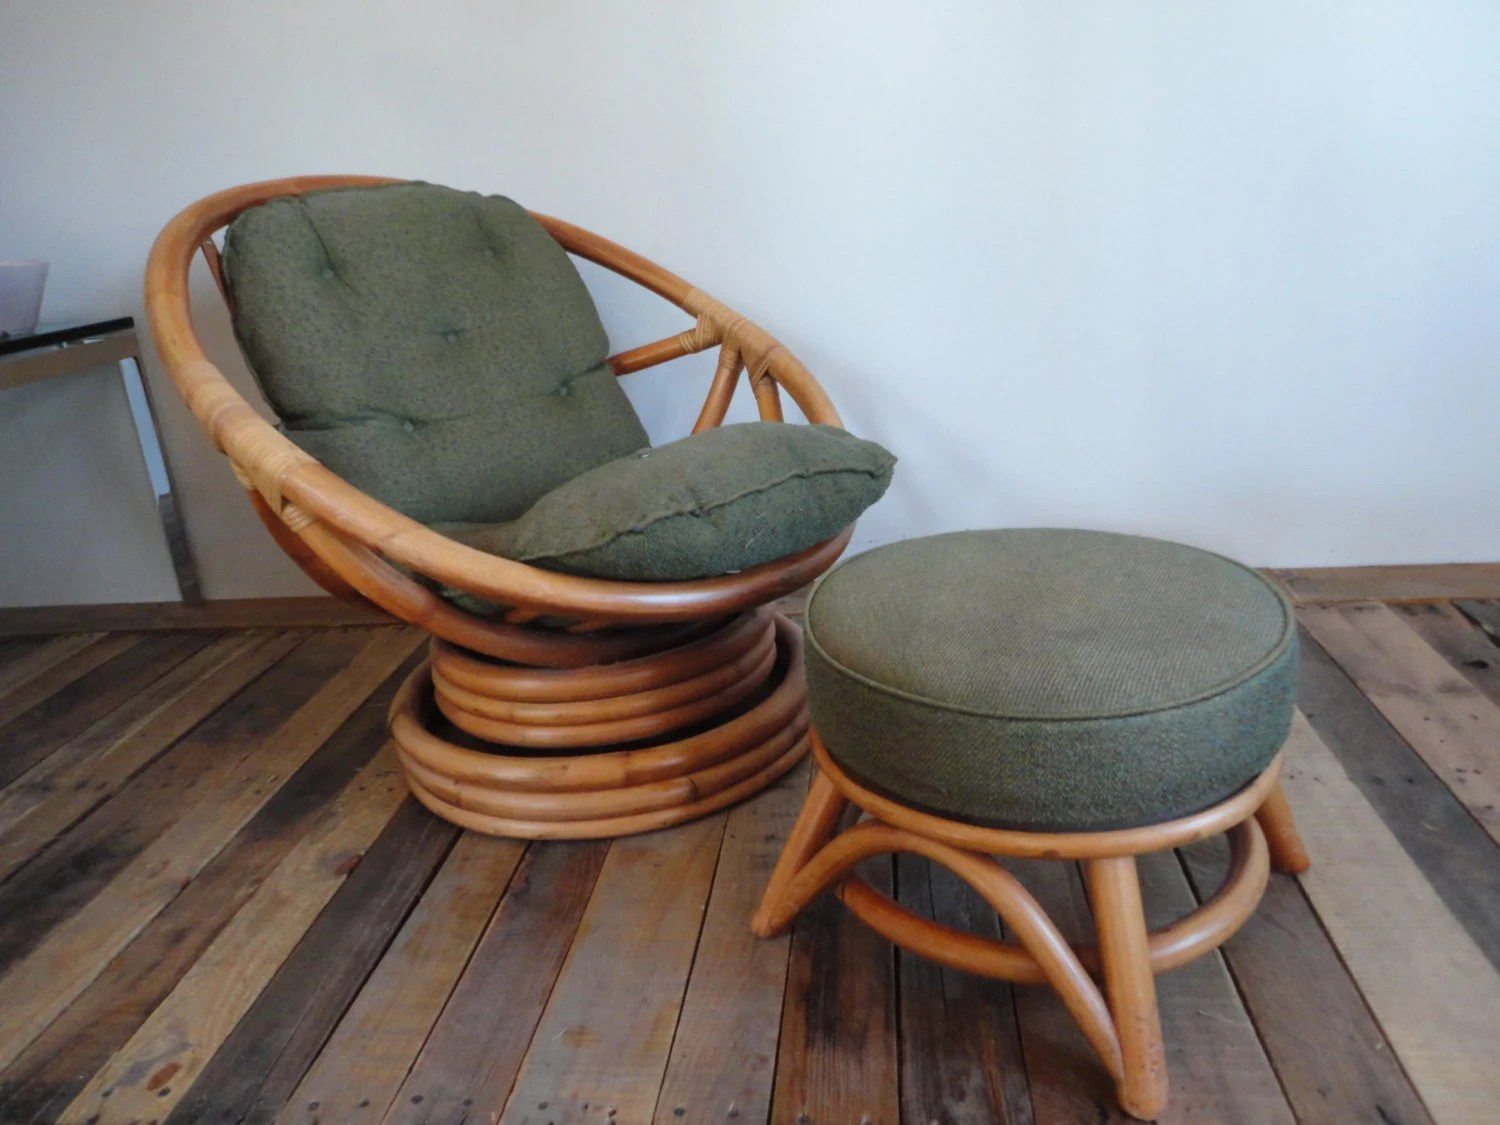 Wicker Swivel Chair Low Rider Swivel Rattan Chair With Ottoman Vintage 60s 70s Mid